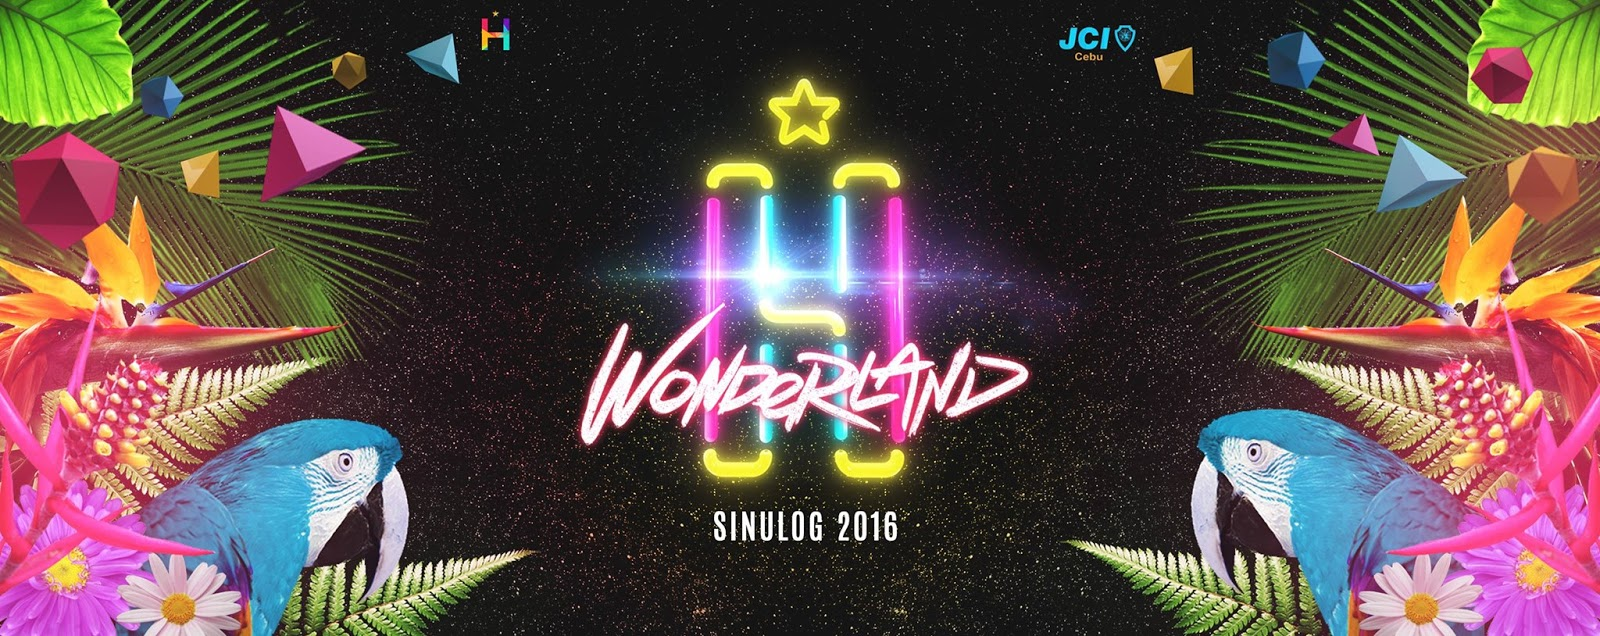 HYPER WONDERLAND in SINULOG 2016